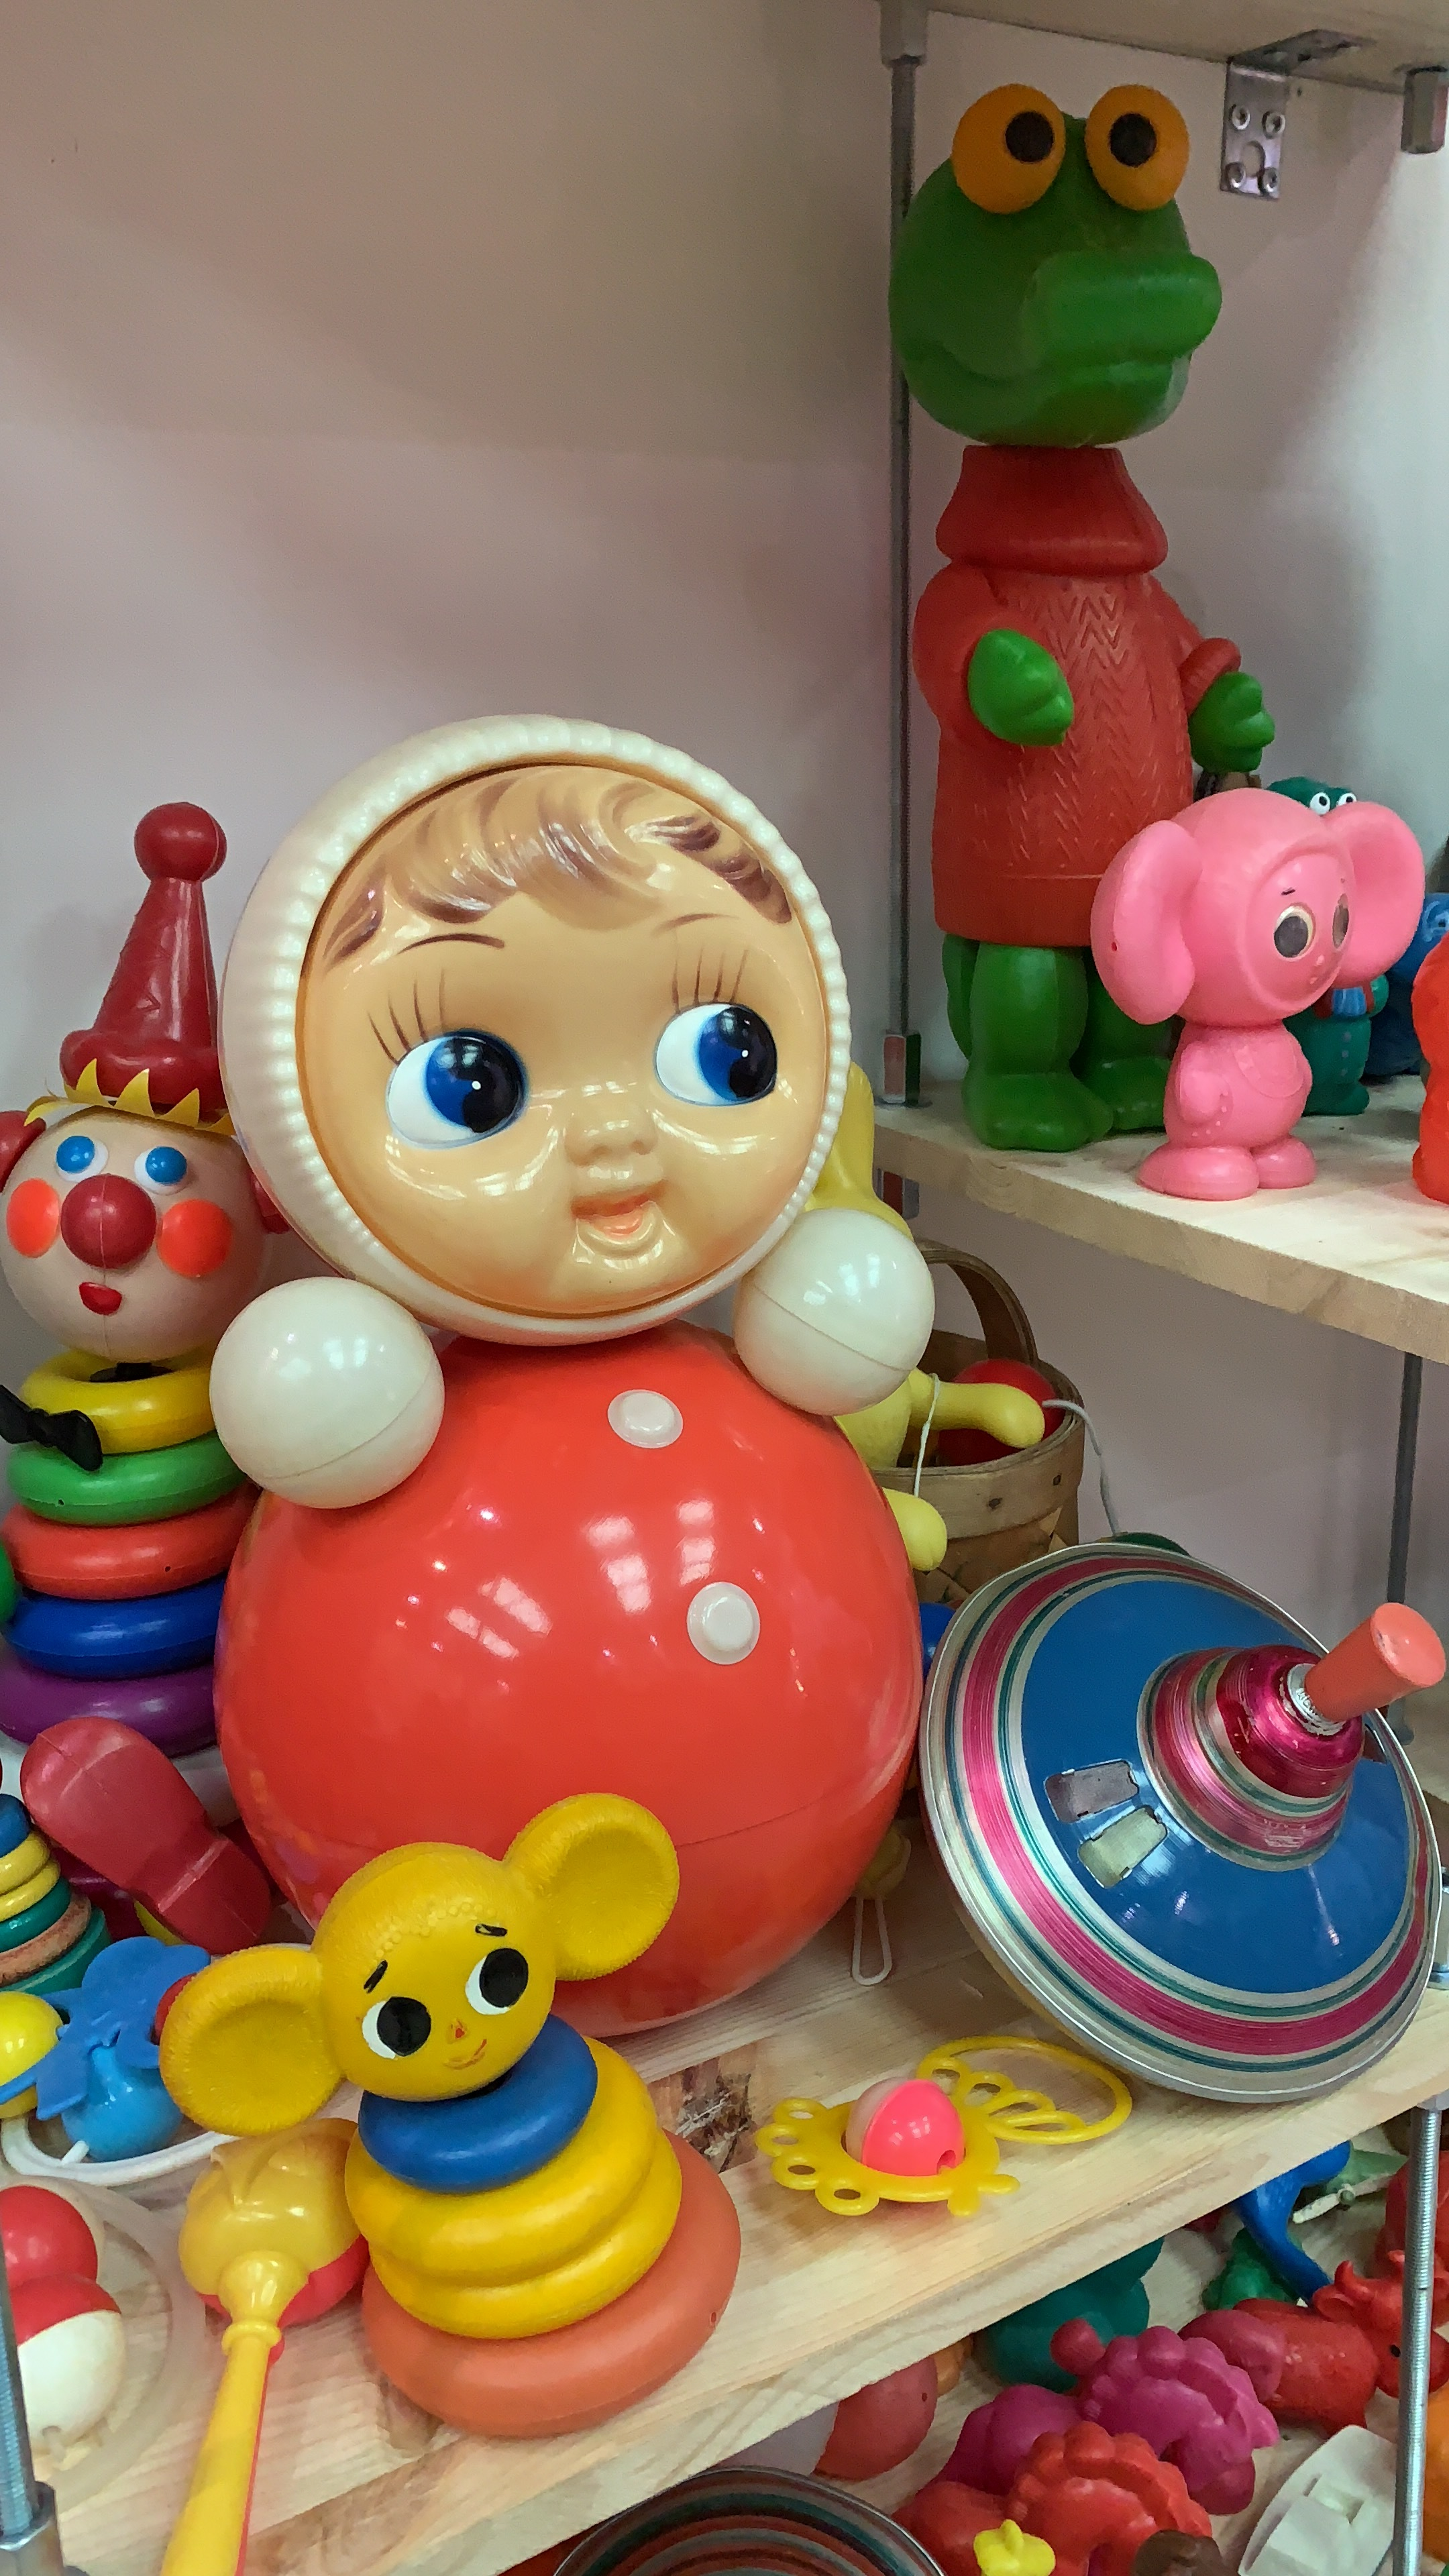 Nevalyashka - a sort of Soviet weeble - among other Soviet toys. Image credit: Museum of Soviet Childhood